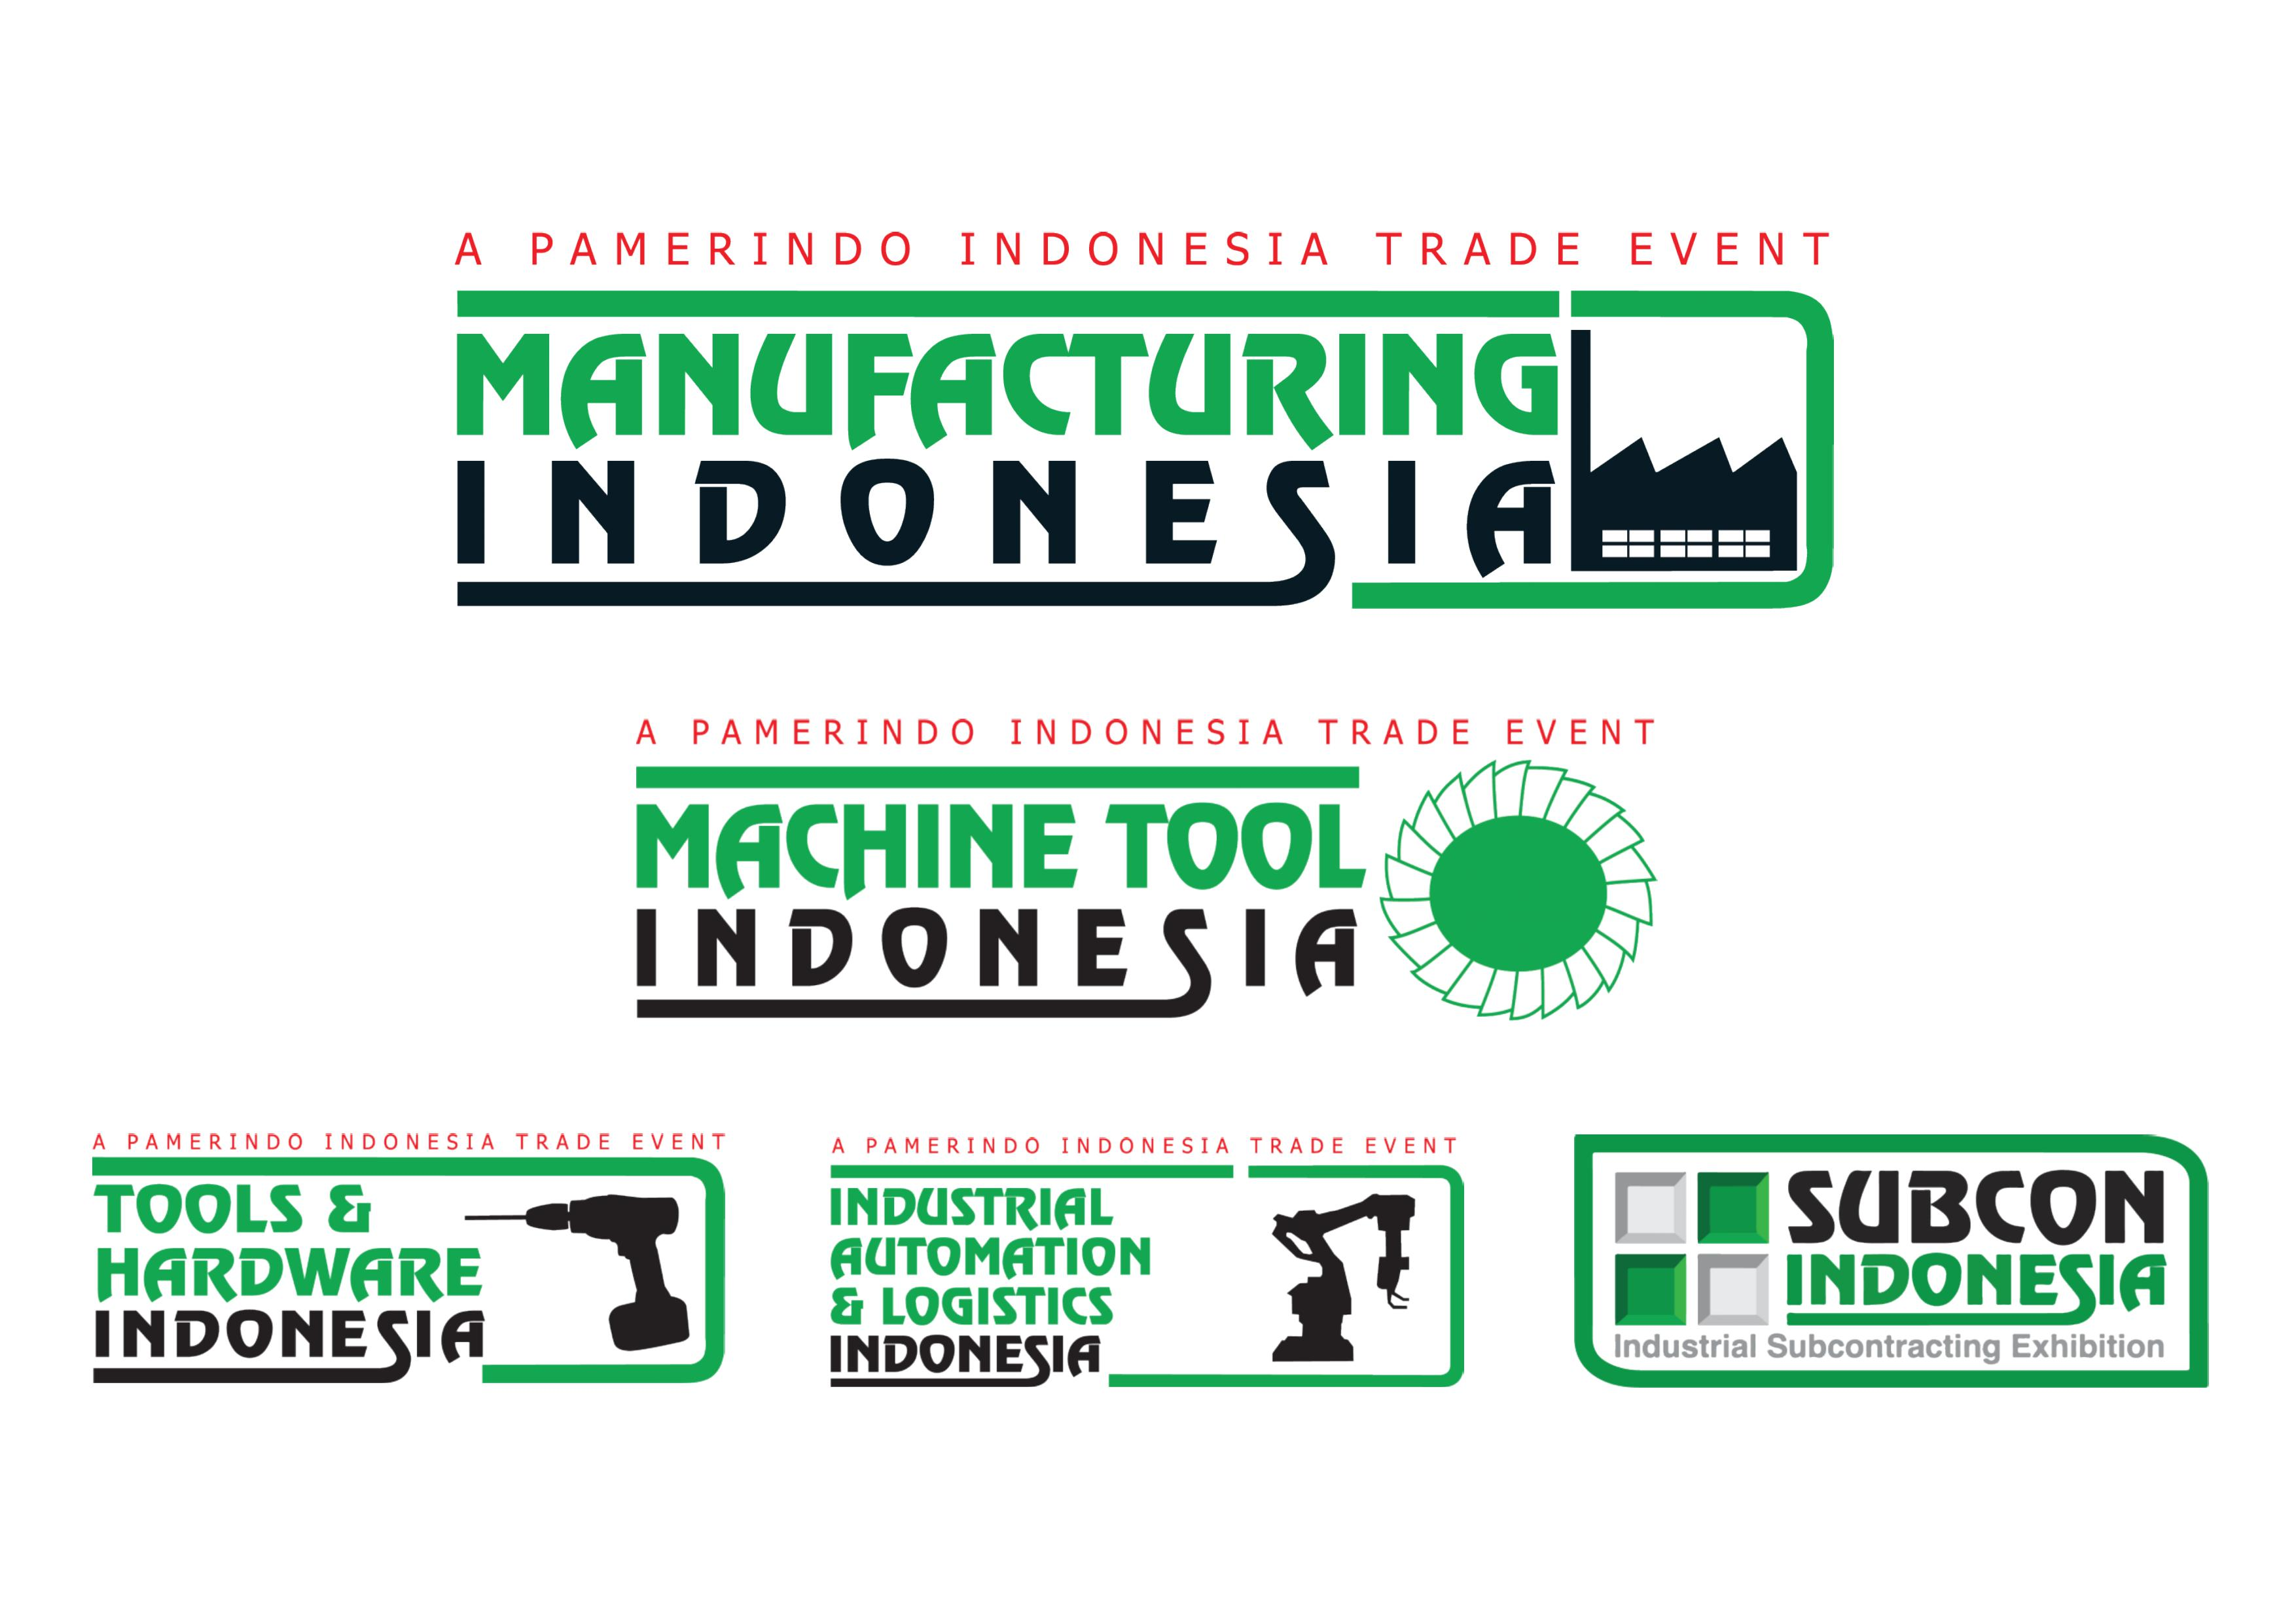 2019 The 30th International Manufacturing, Machinery, Equipment, Materials and Services Exhibition